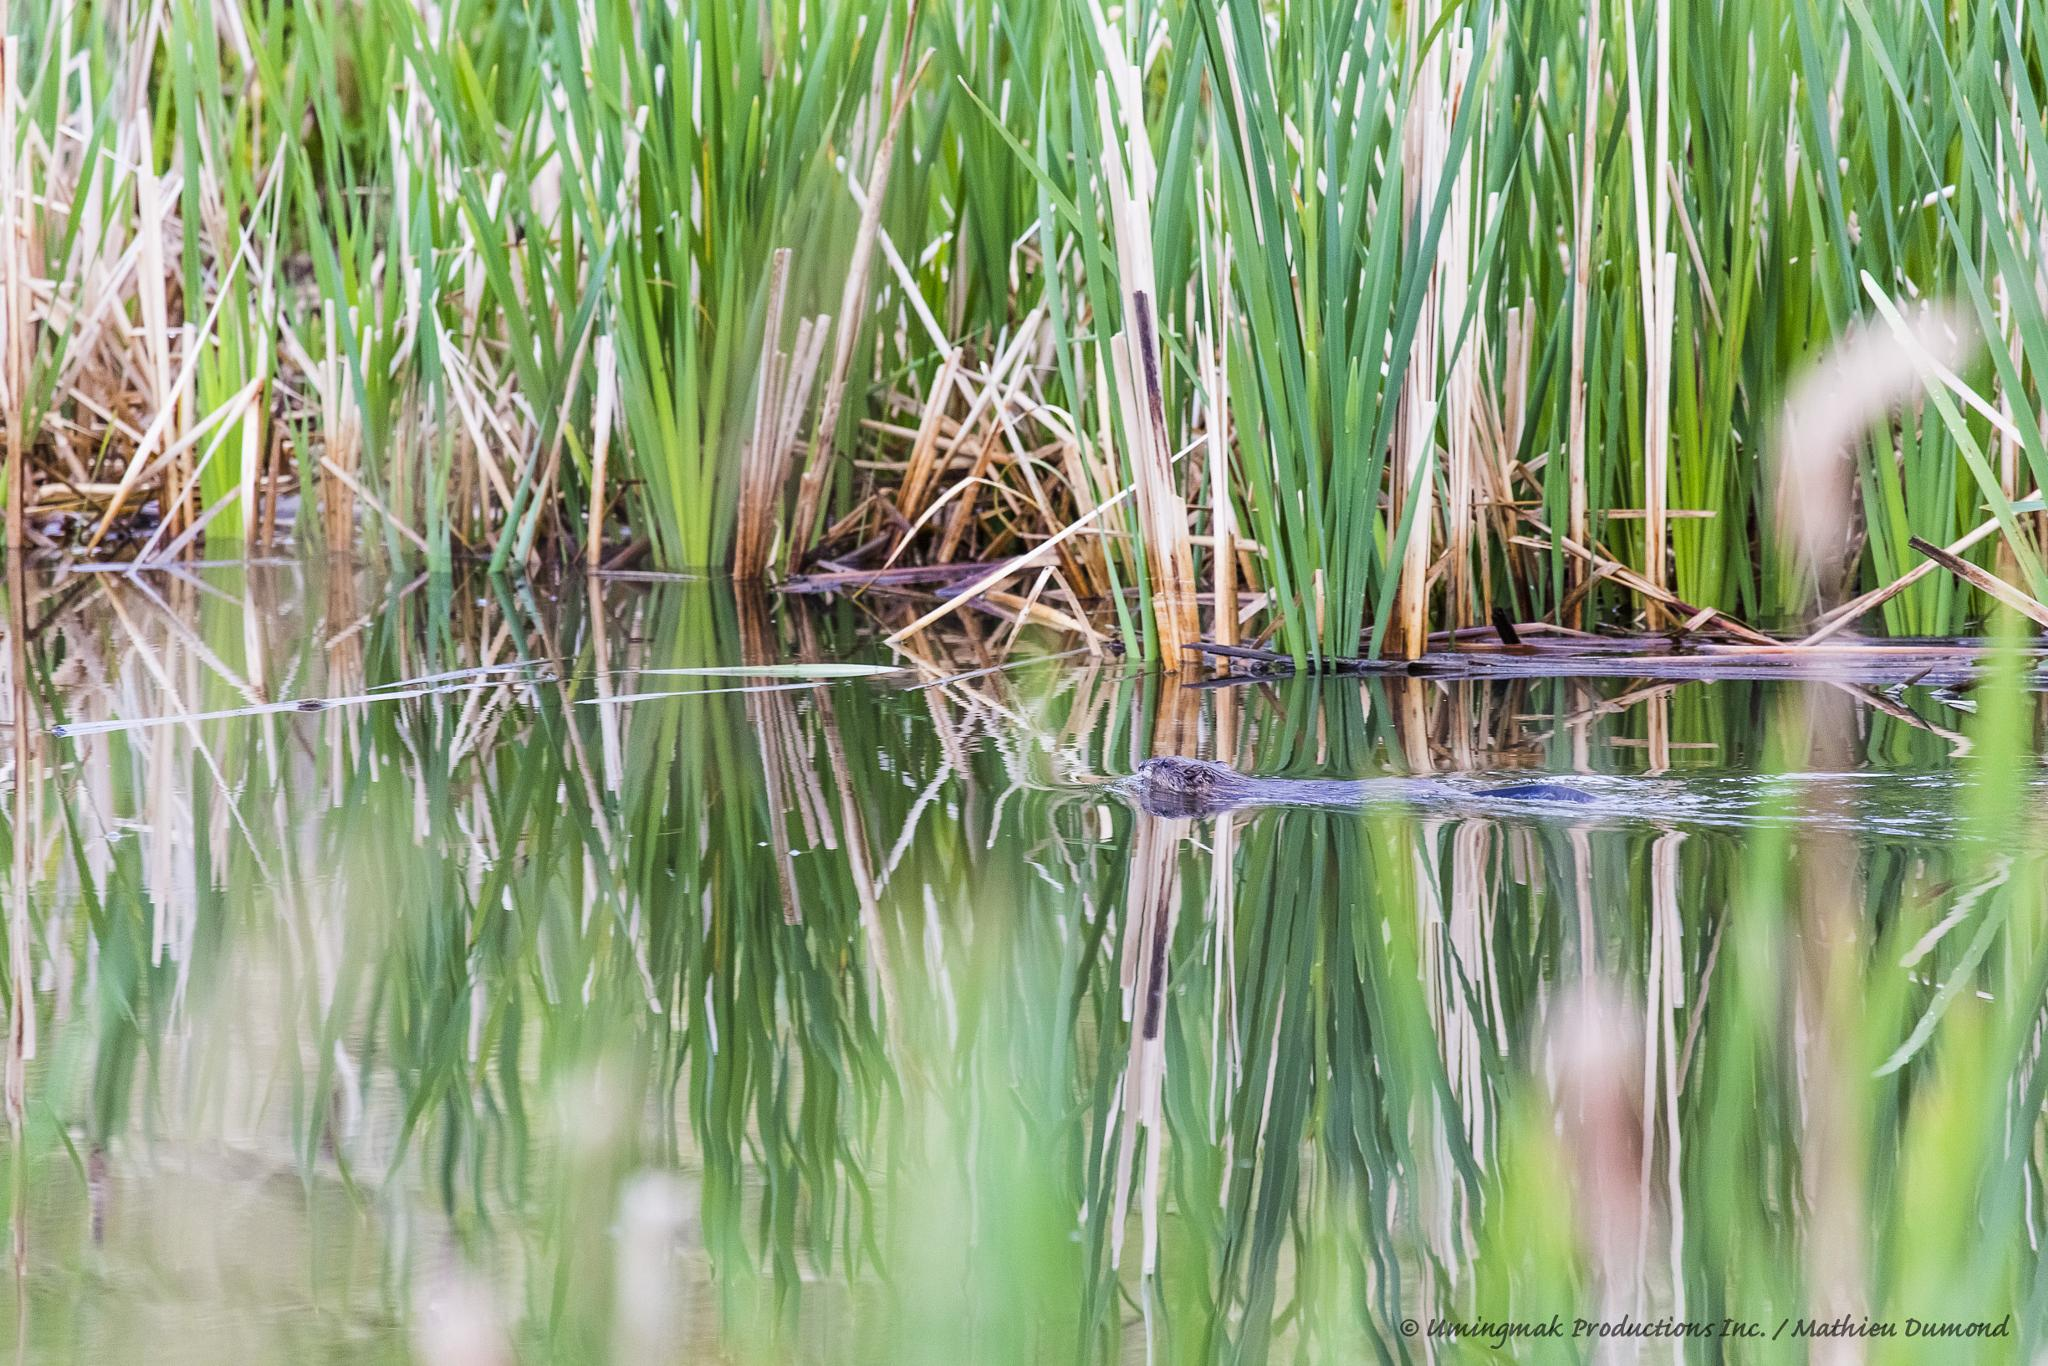 Muskrat in the rushes by Mathieu Dumond